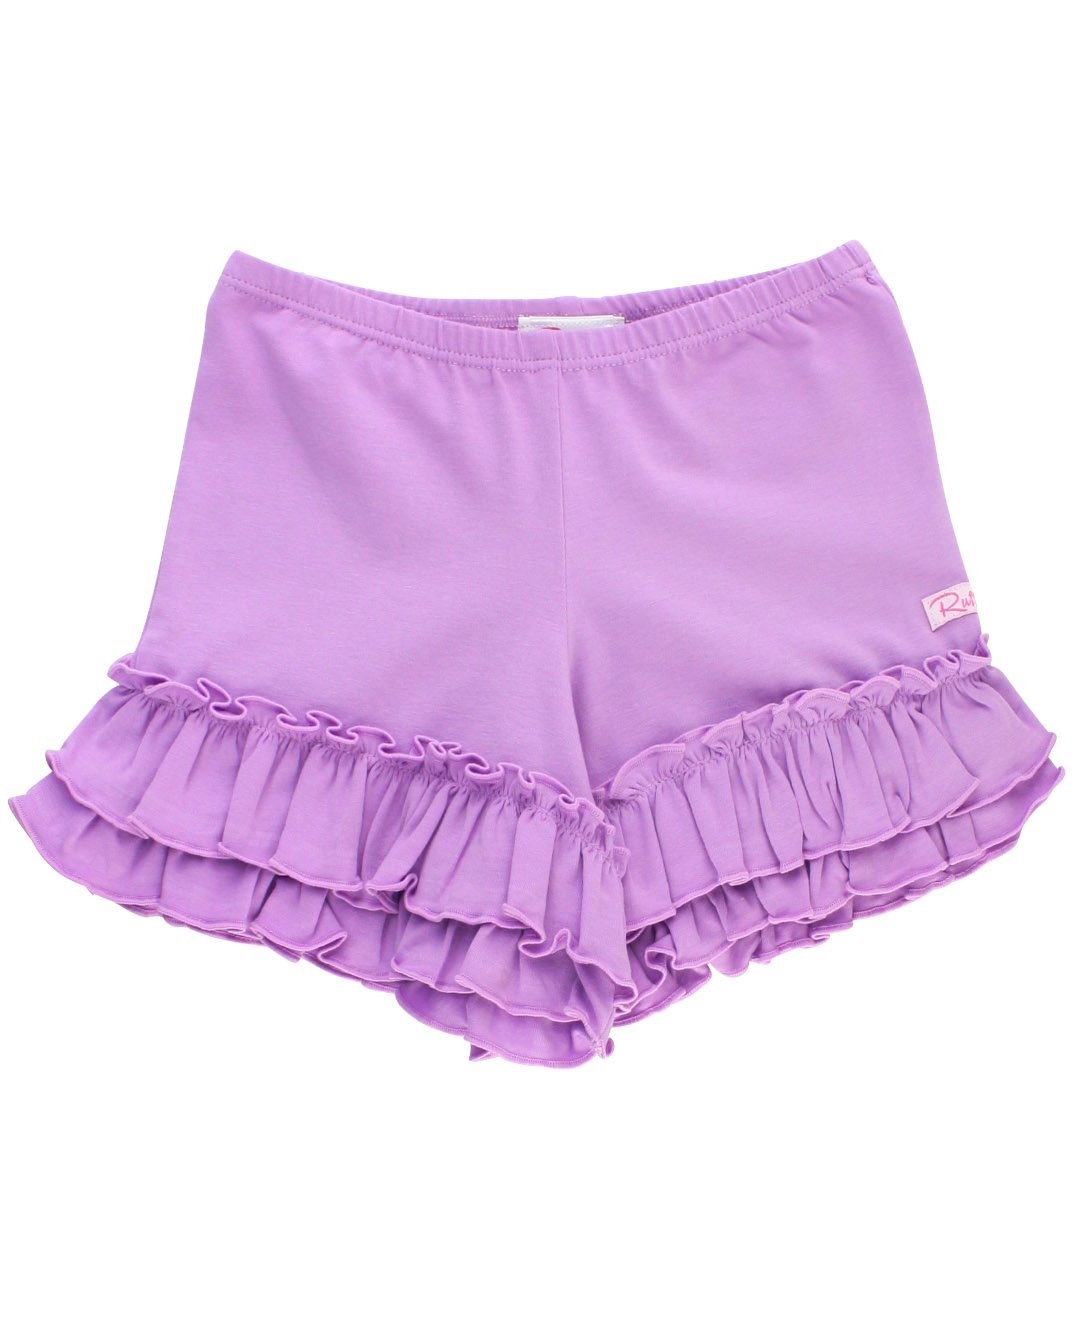 RuffleButts Little Girls Flowy Short w/Ruffle Trim - Lilac - 5